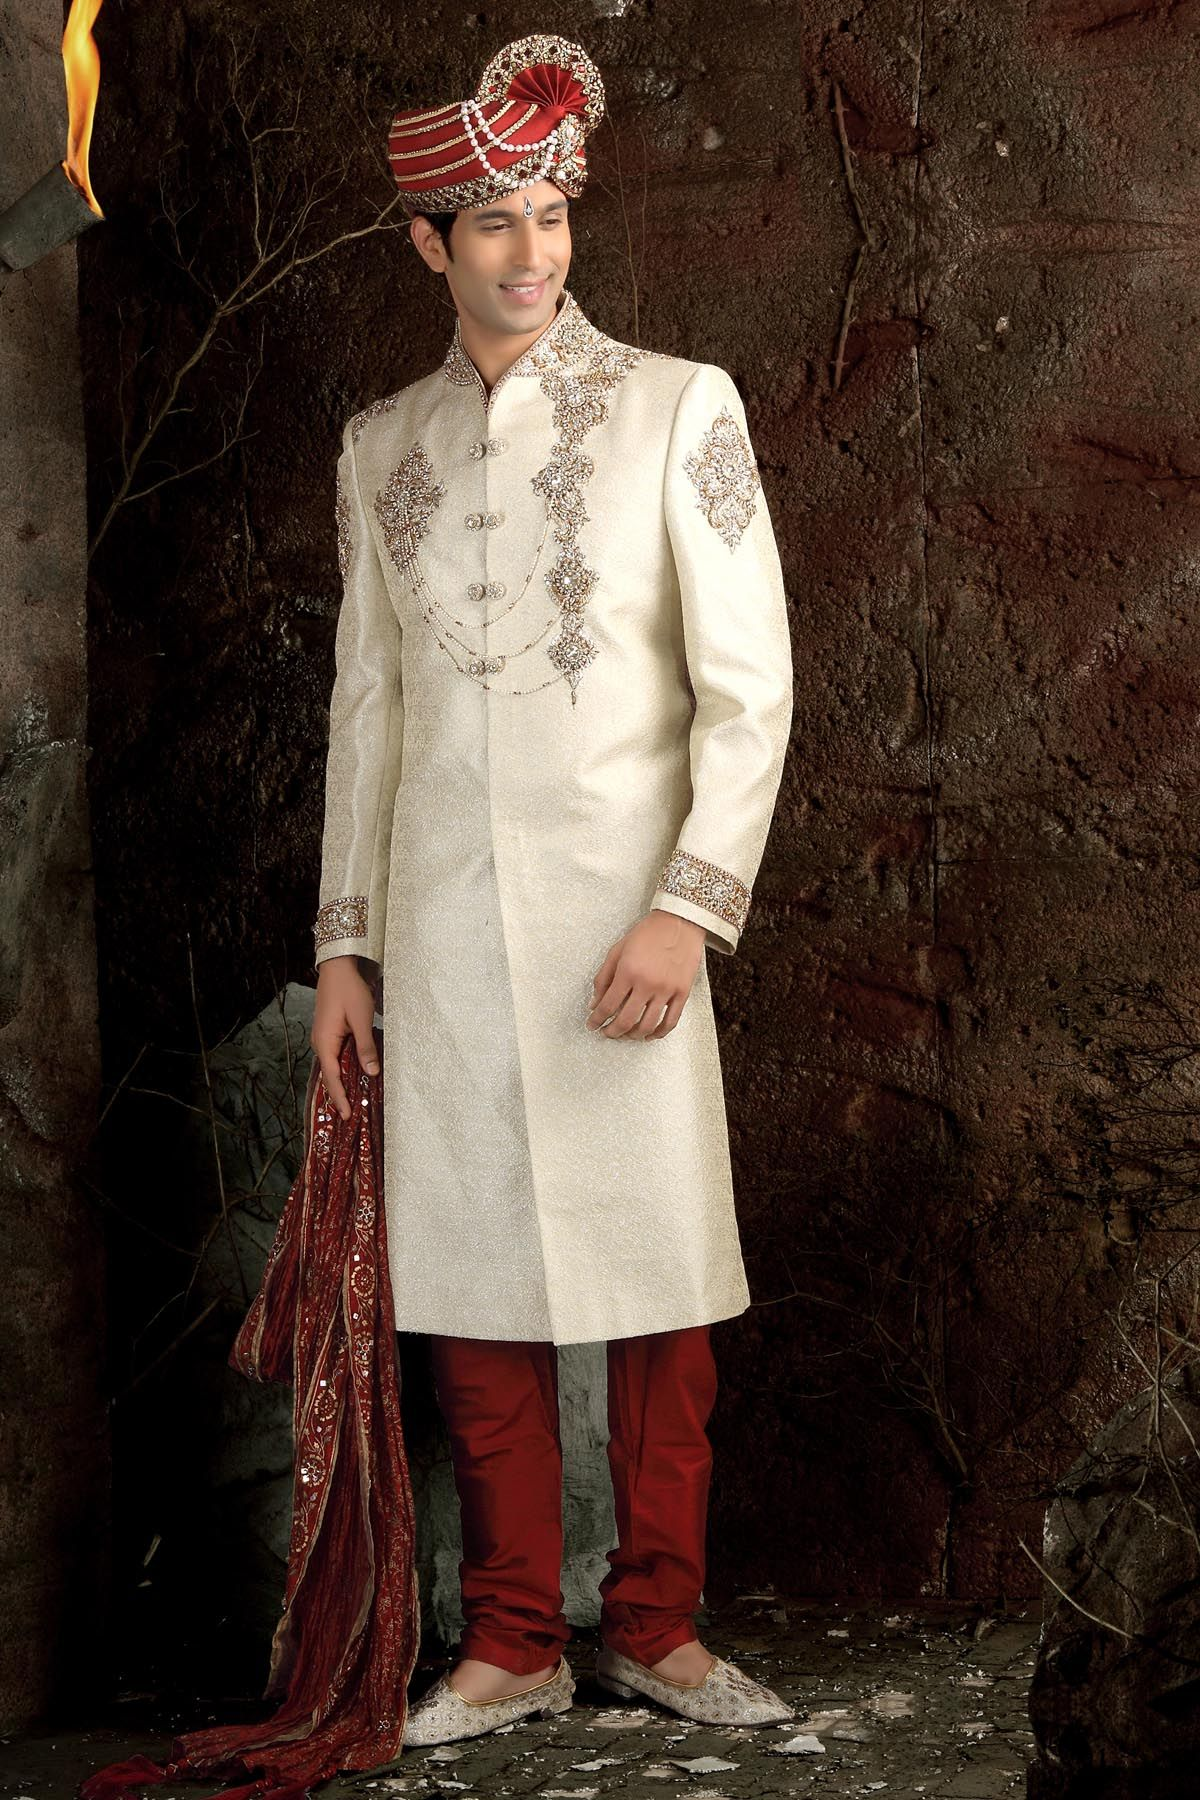 Indian Wedding Dress For Men ~ Indian Wedding Dressmen Grooms ...